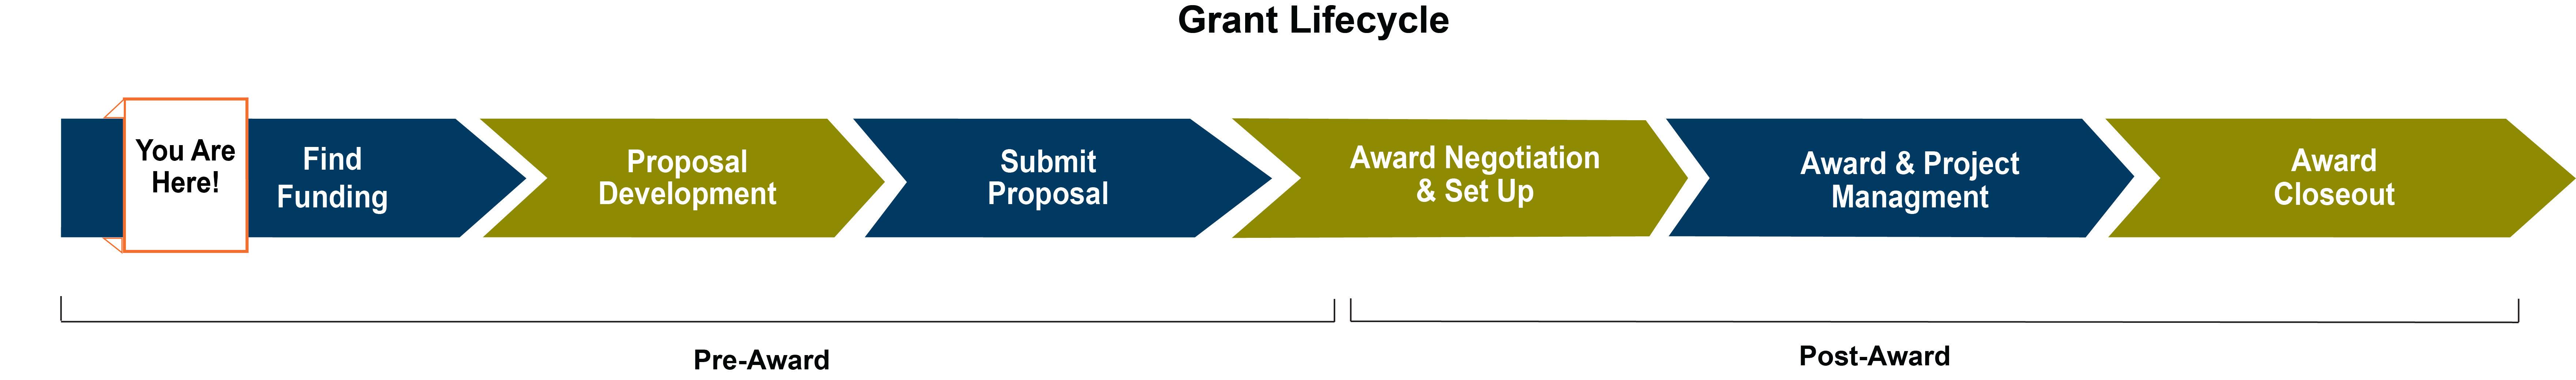 Grant Lifecycle